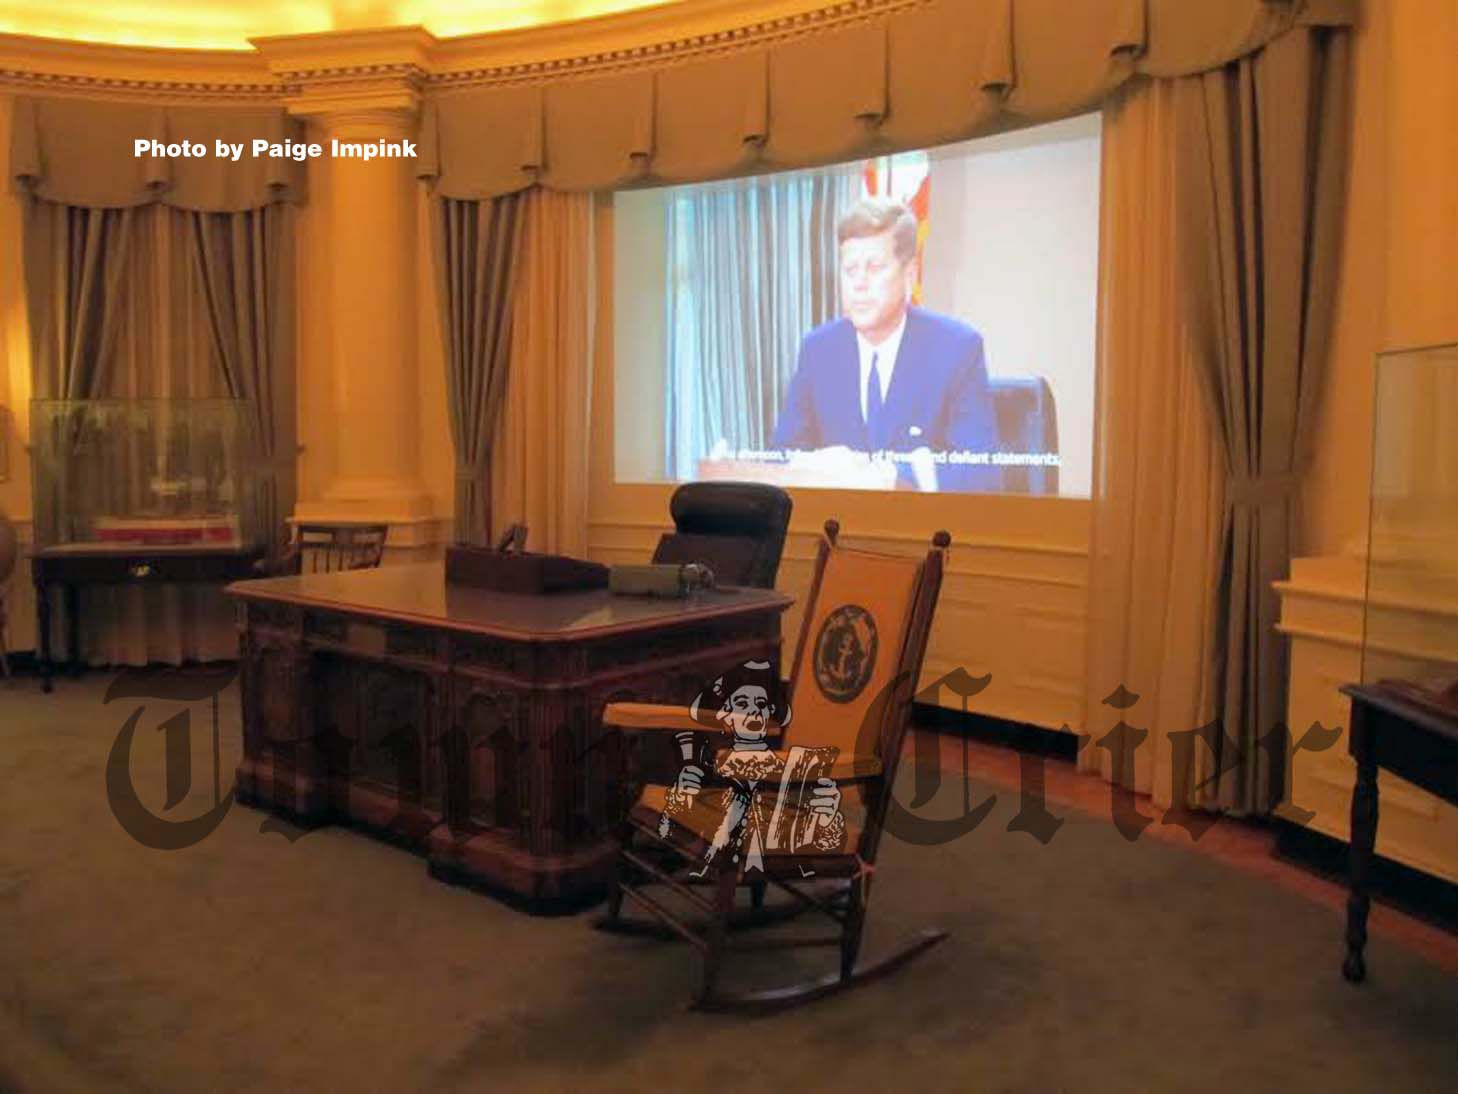 jfk rocking chair swivel overstock an idea lives on at john f kennedy presidential library